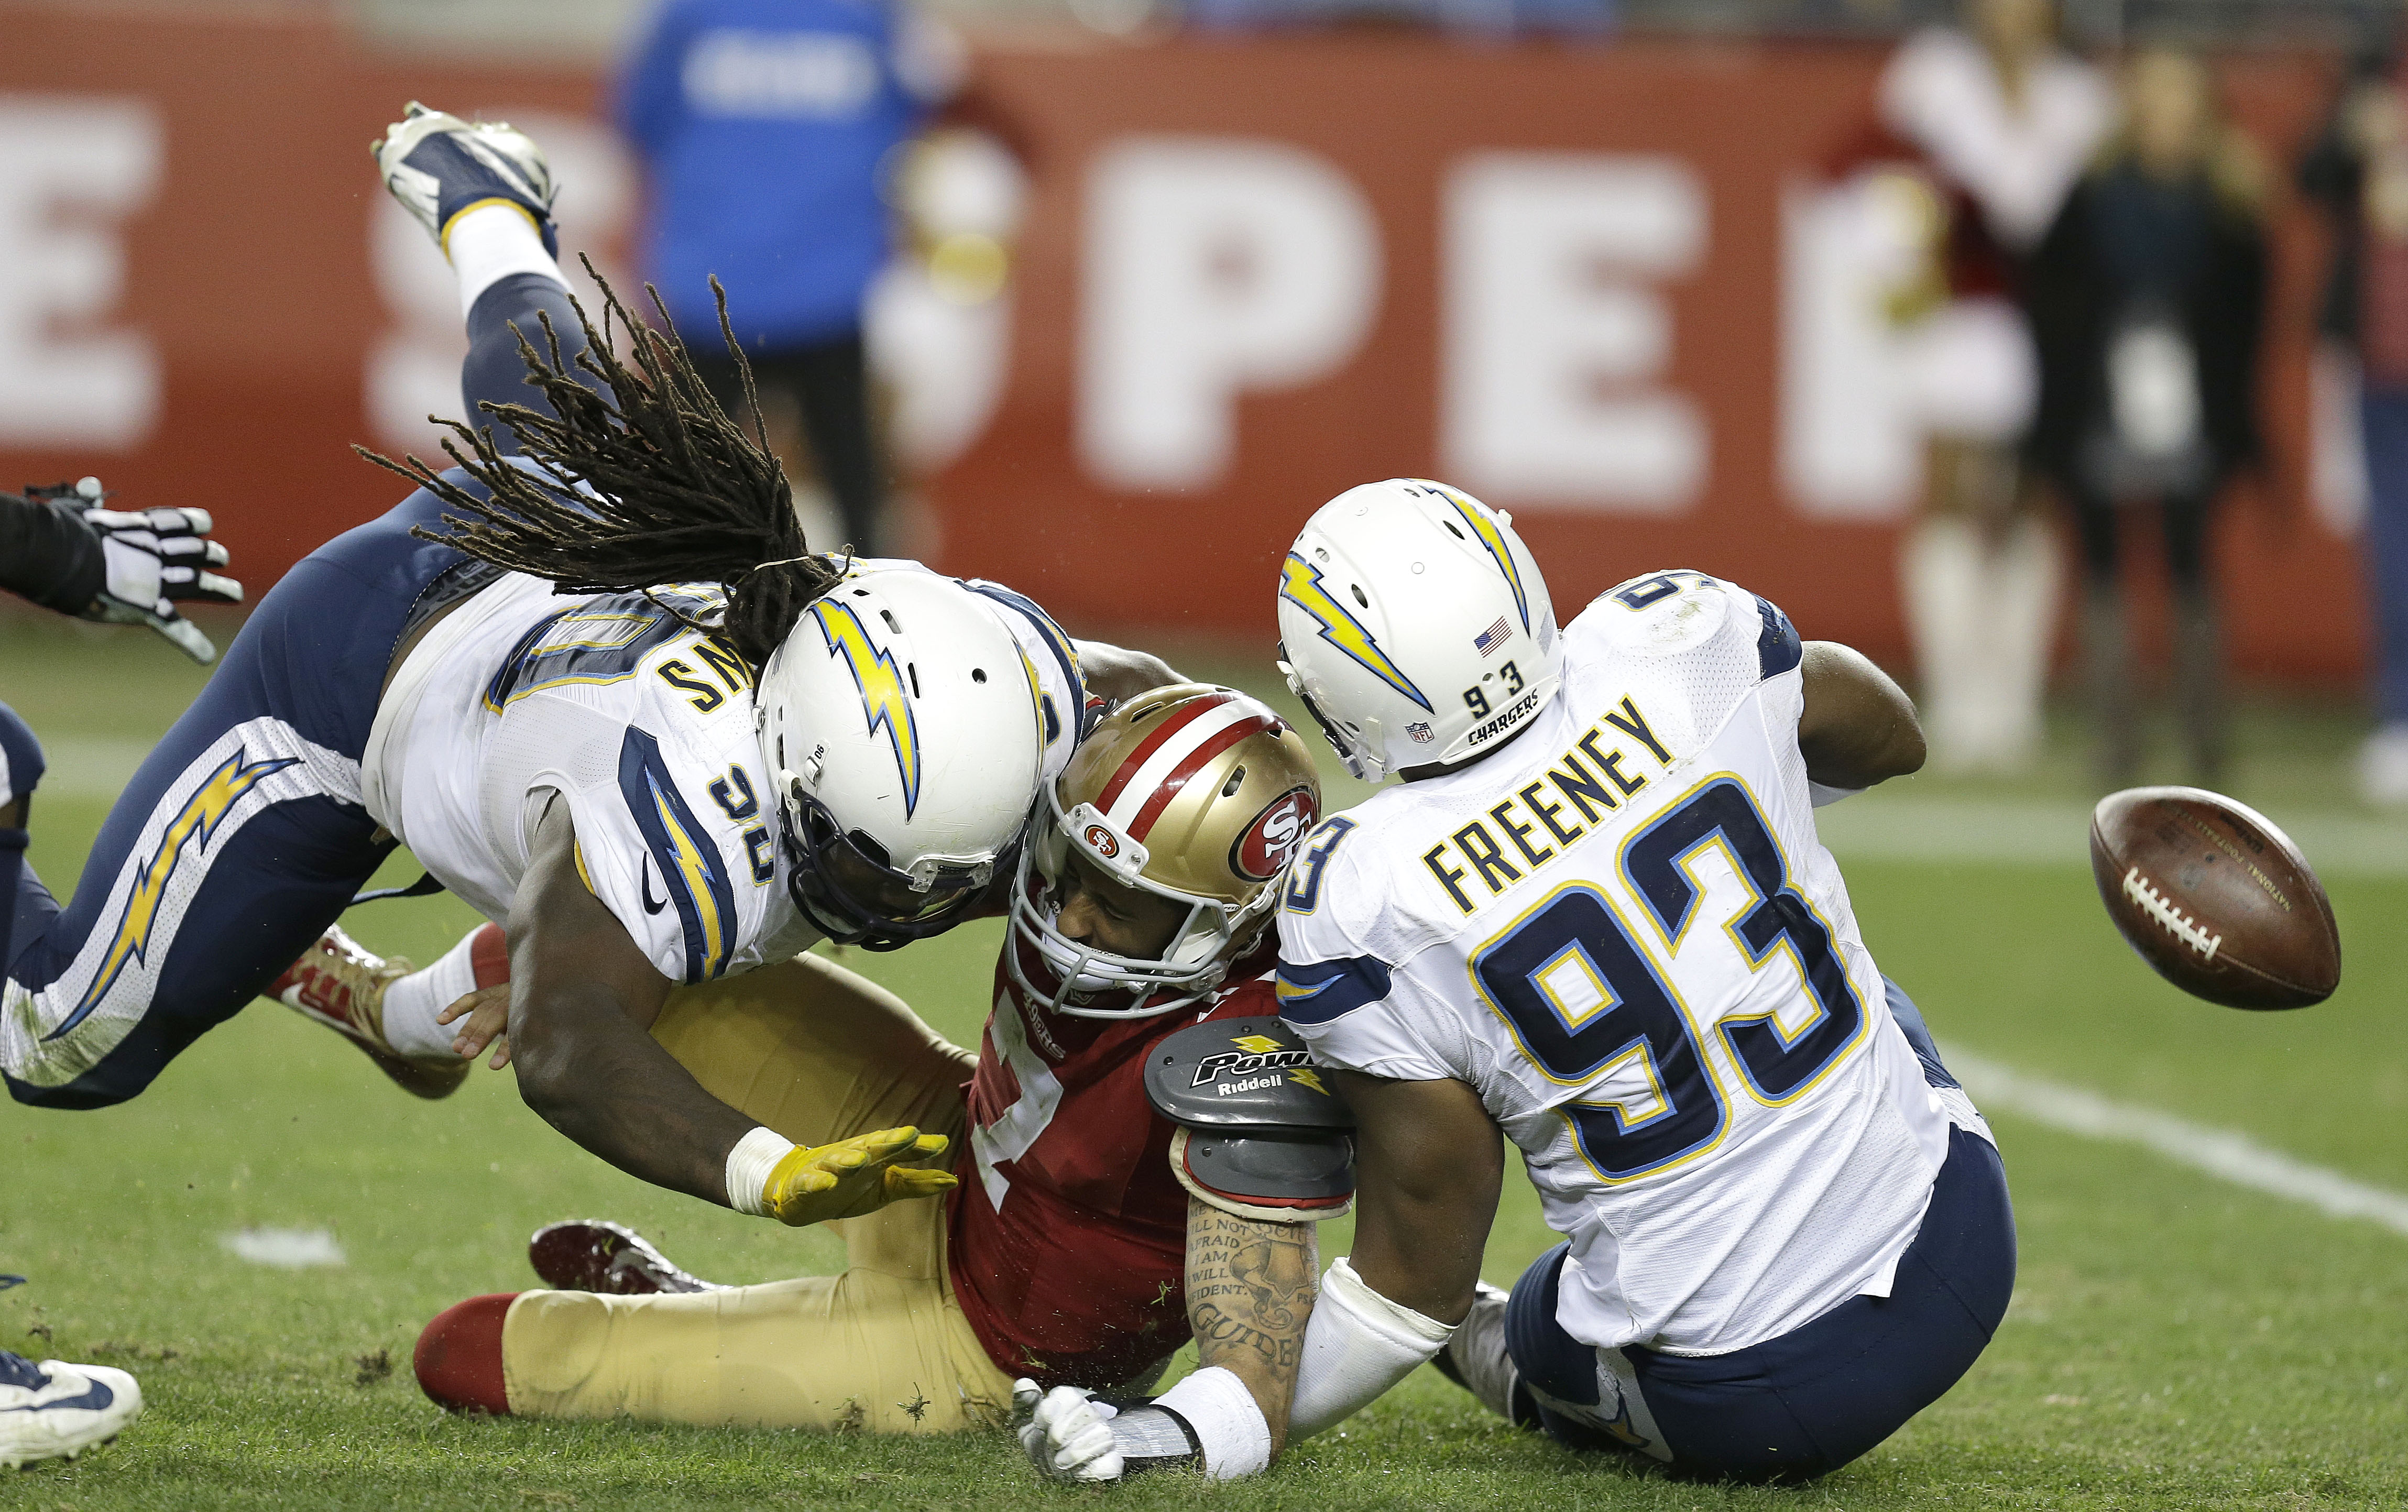 San Francisco 49ers quarterback Colin Kaepernick, center, fumbles the ball after being sacked by San Diego Chargers outside linebacker Dwight Freeney (93) and defensive tackle Ricardo Mathews (90) during the third quarter of an NFL football game in Santa